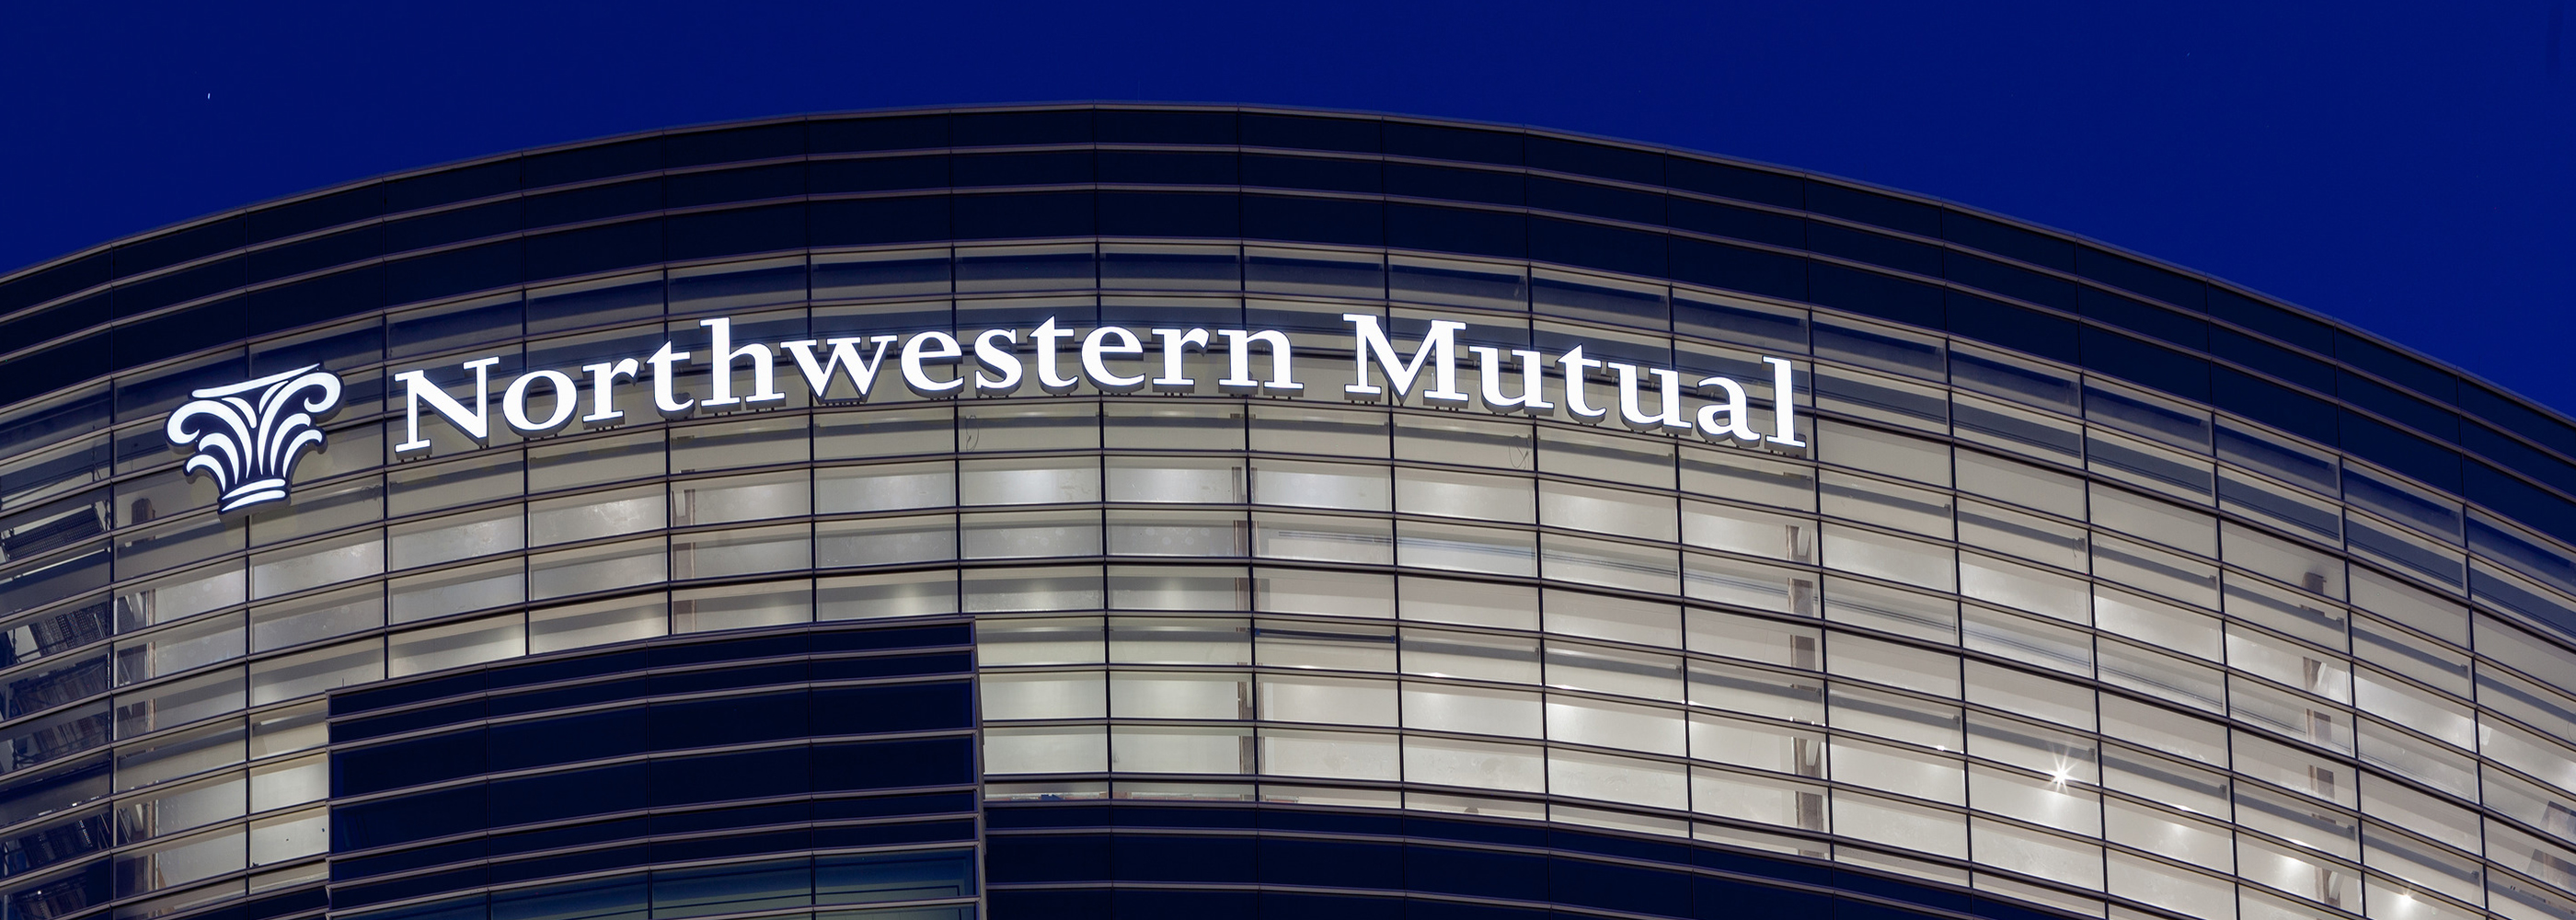 Cropped view of the Northwestern Mutual logo on the side of a skyscraper.